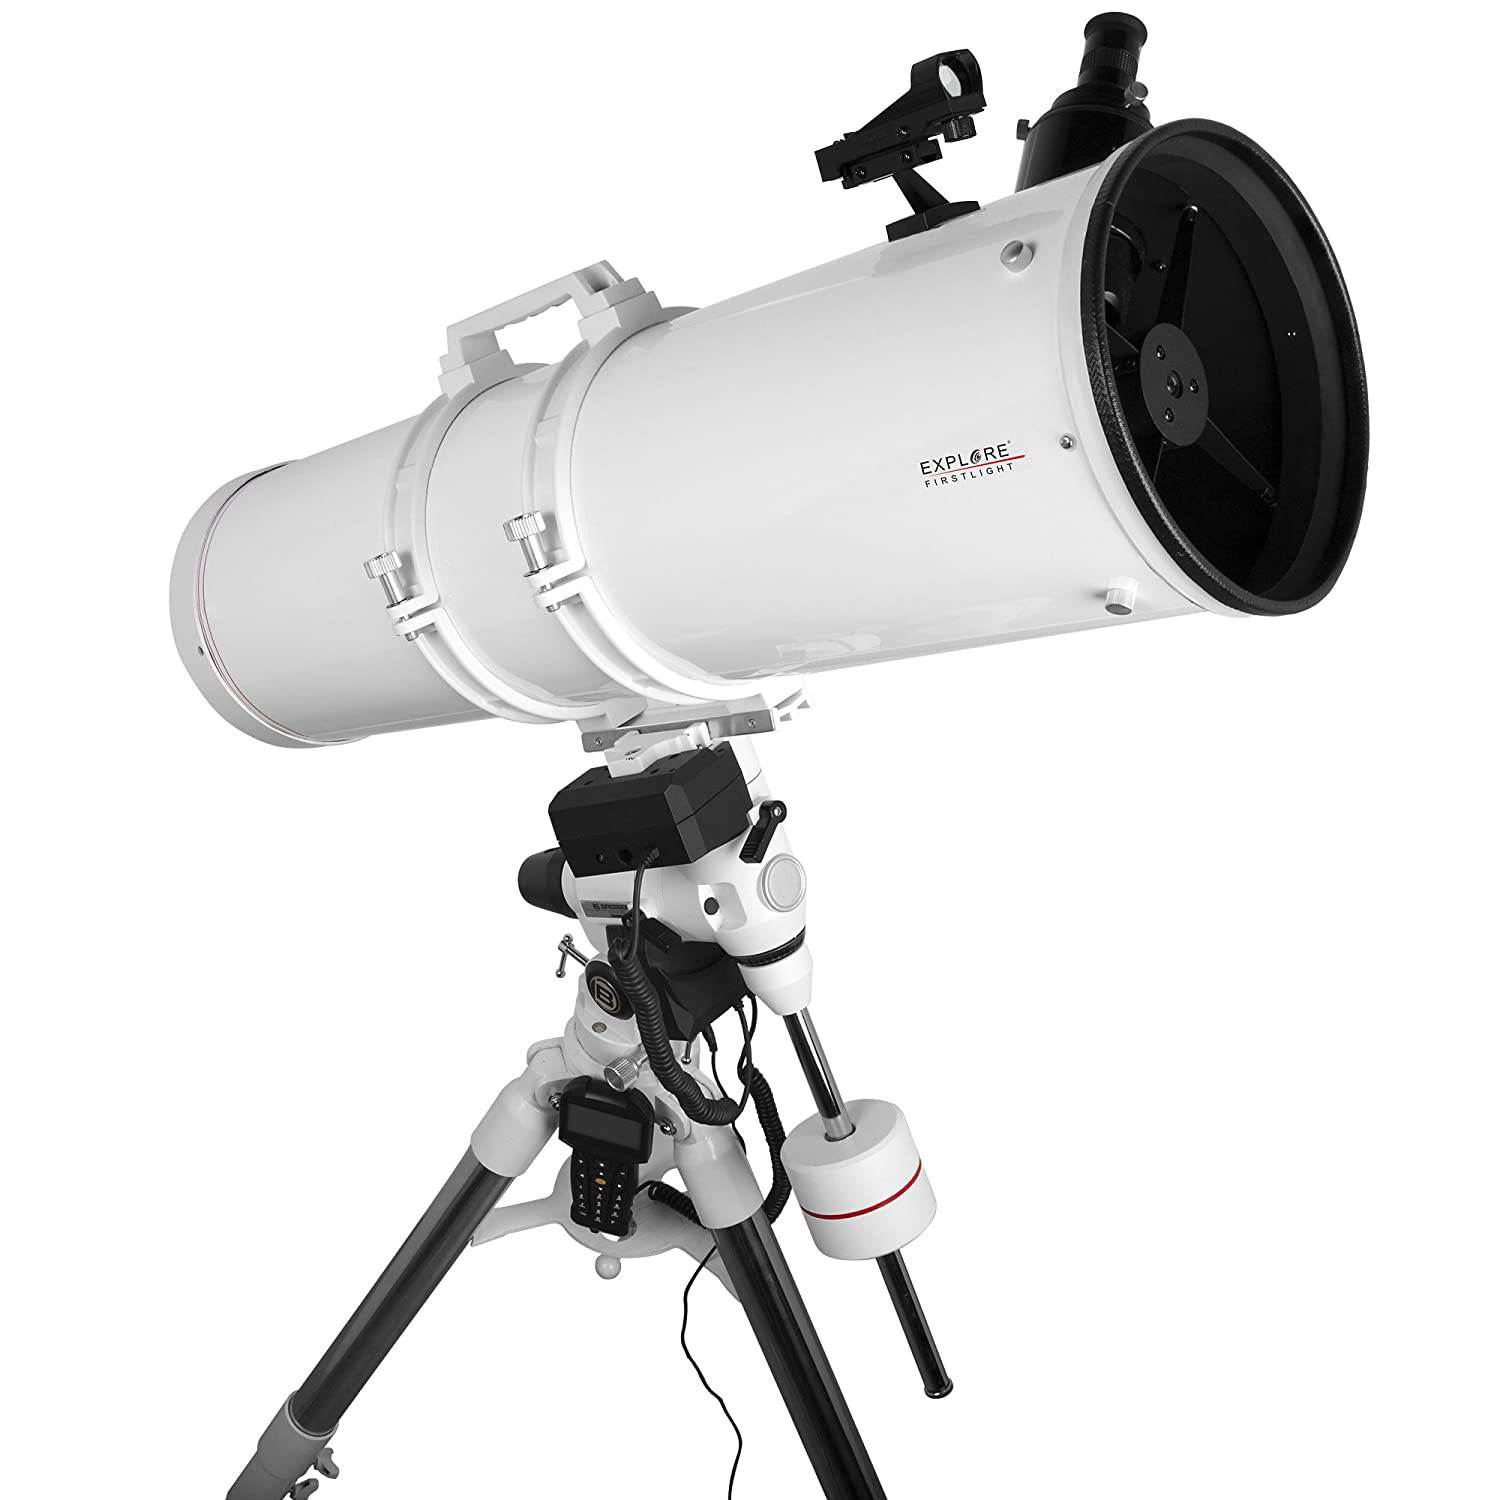 Explore Scientific fl-n2031000exos2gt Newtonian Telescope with exos-2マウントwith GoTo、203 mm、ホワイト   B0743HMDK4